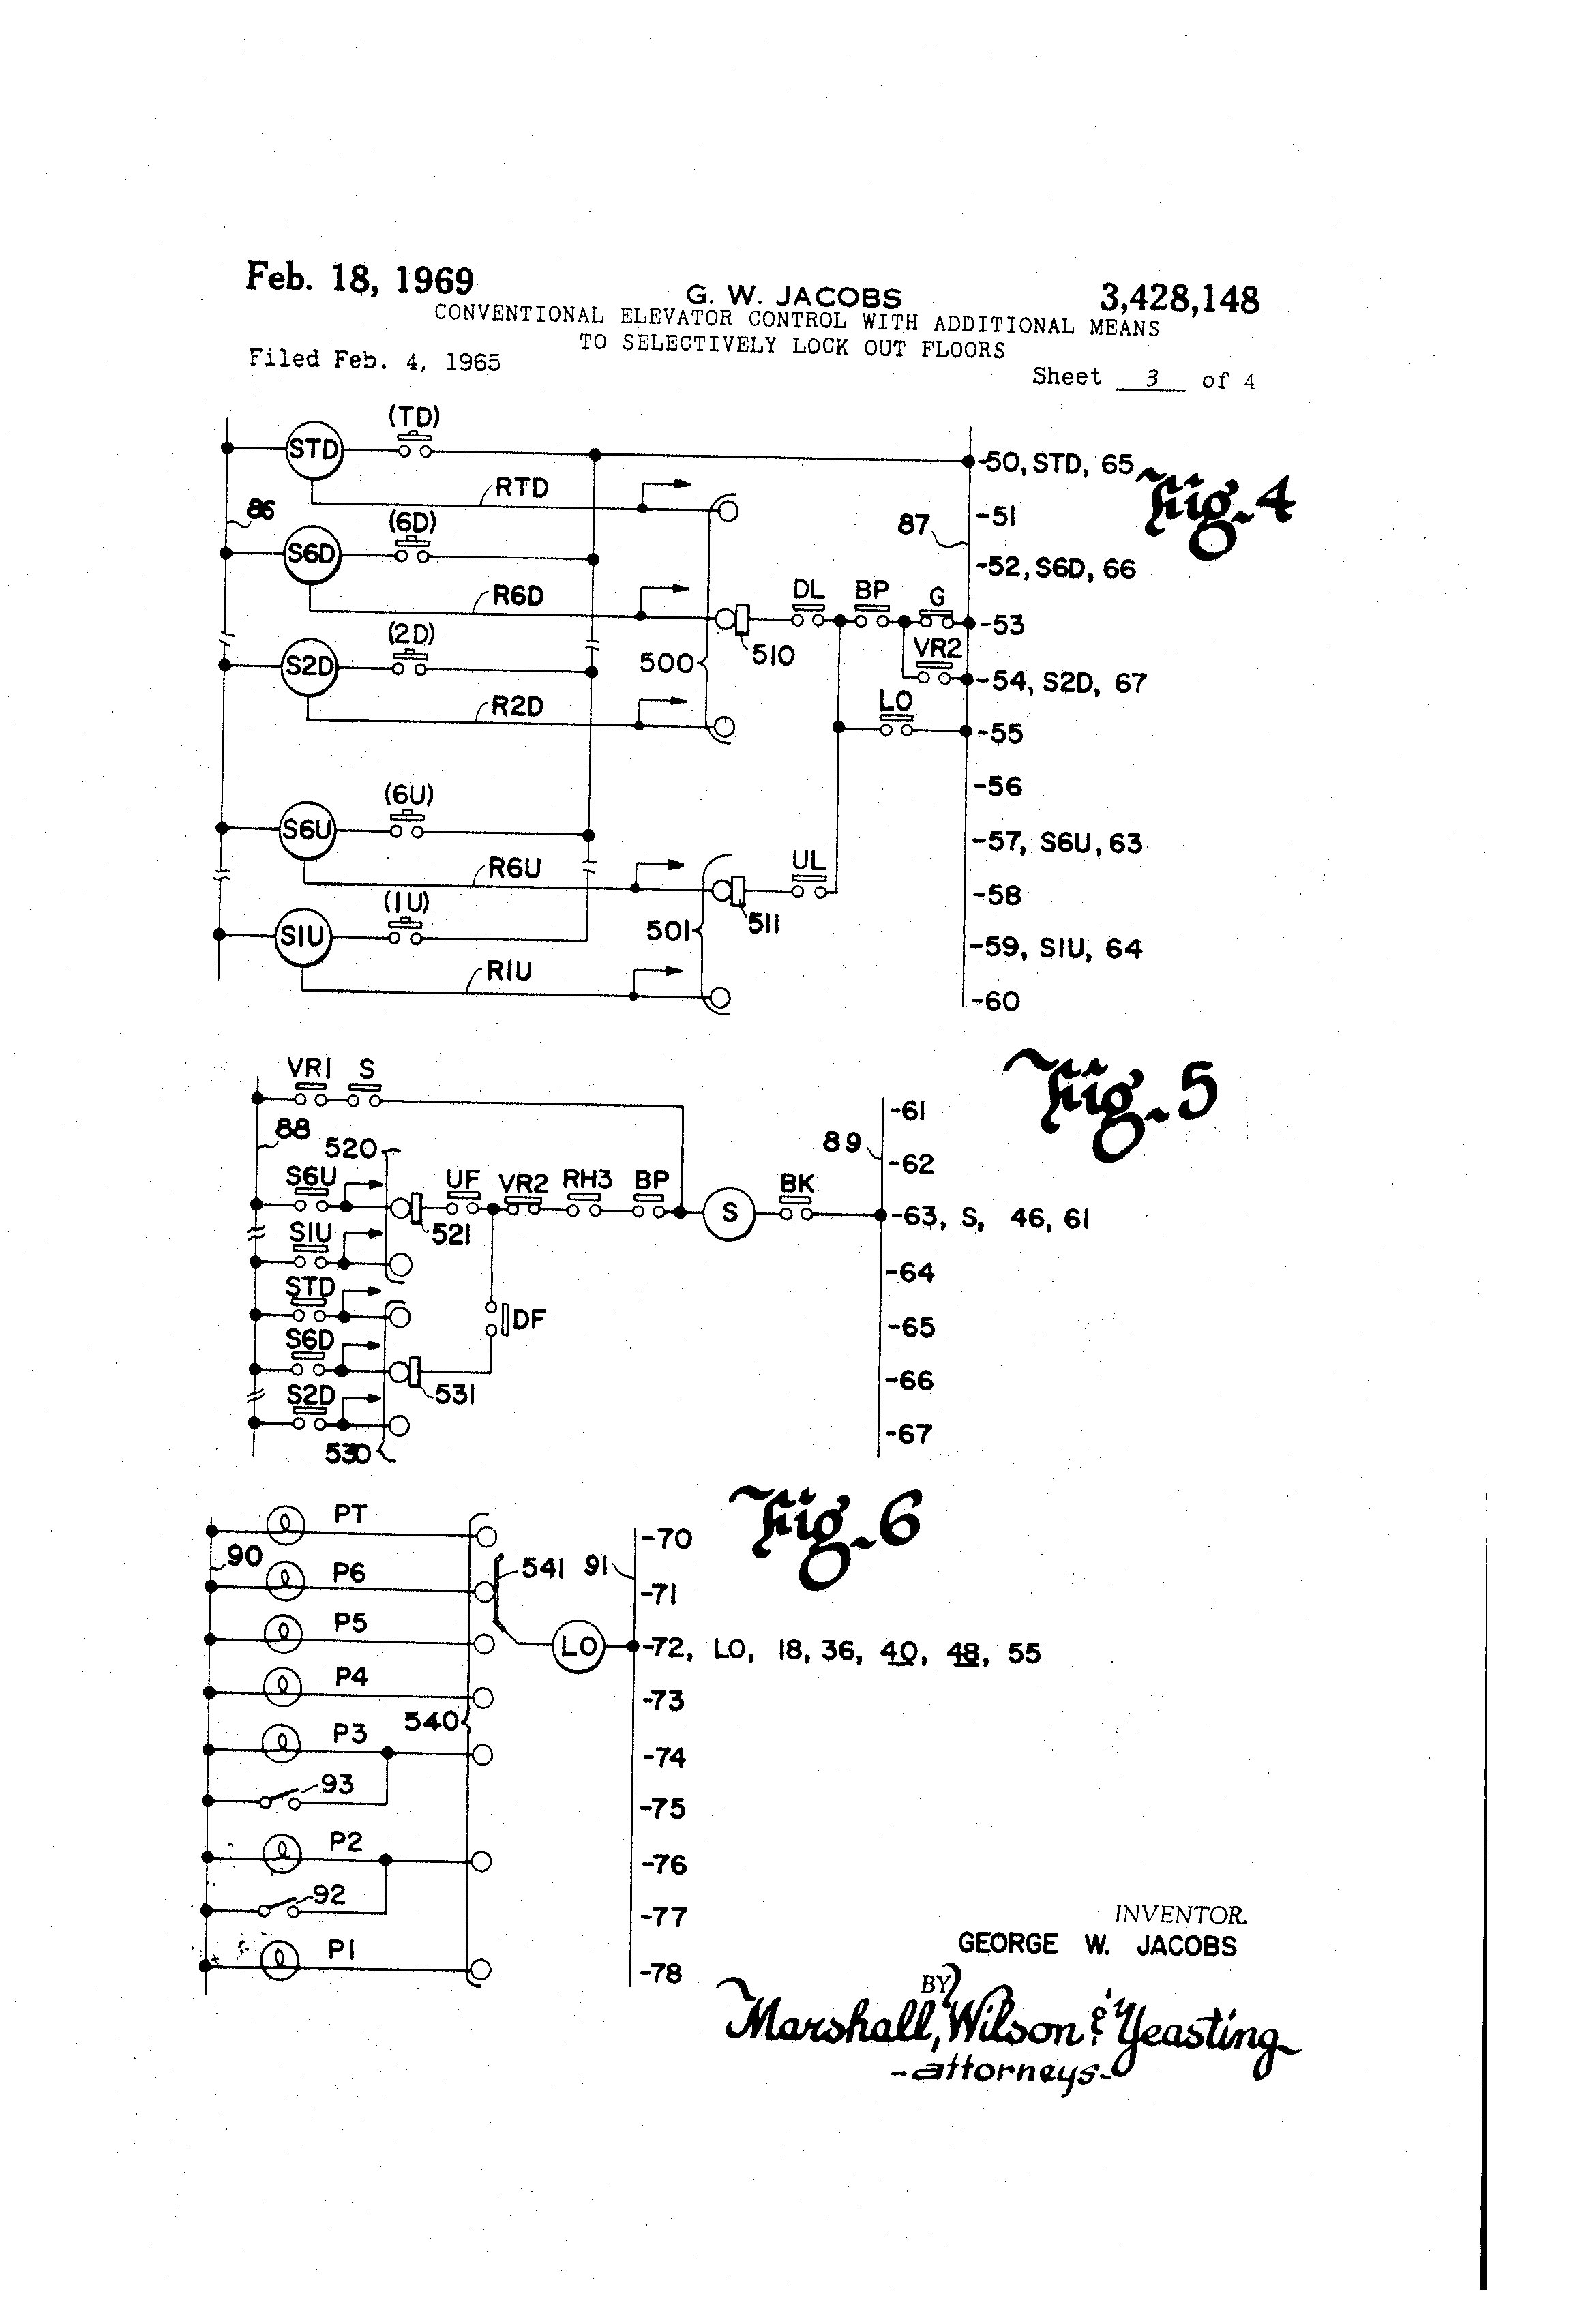 US3428148 2 patent us3428148 conventional elevator control with additional 86 lockout relay wiring diagram at crackthecode.co